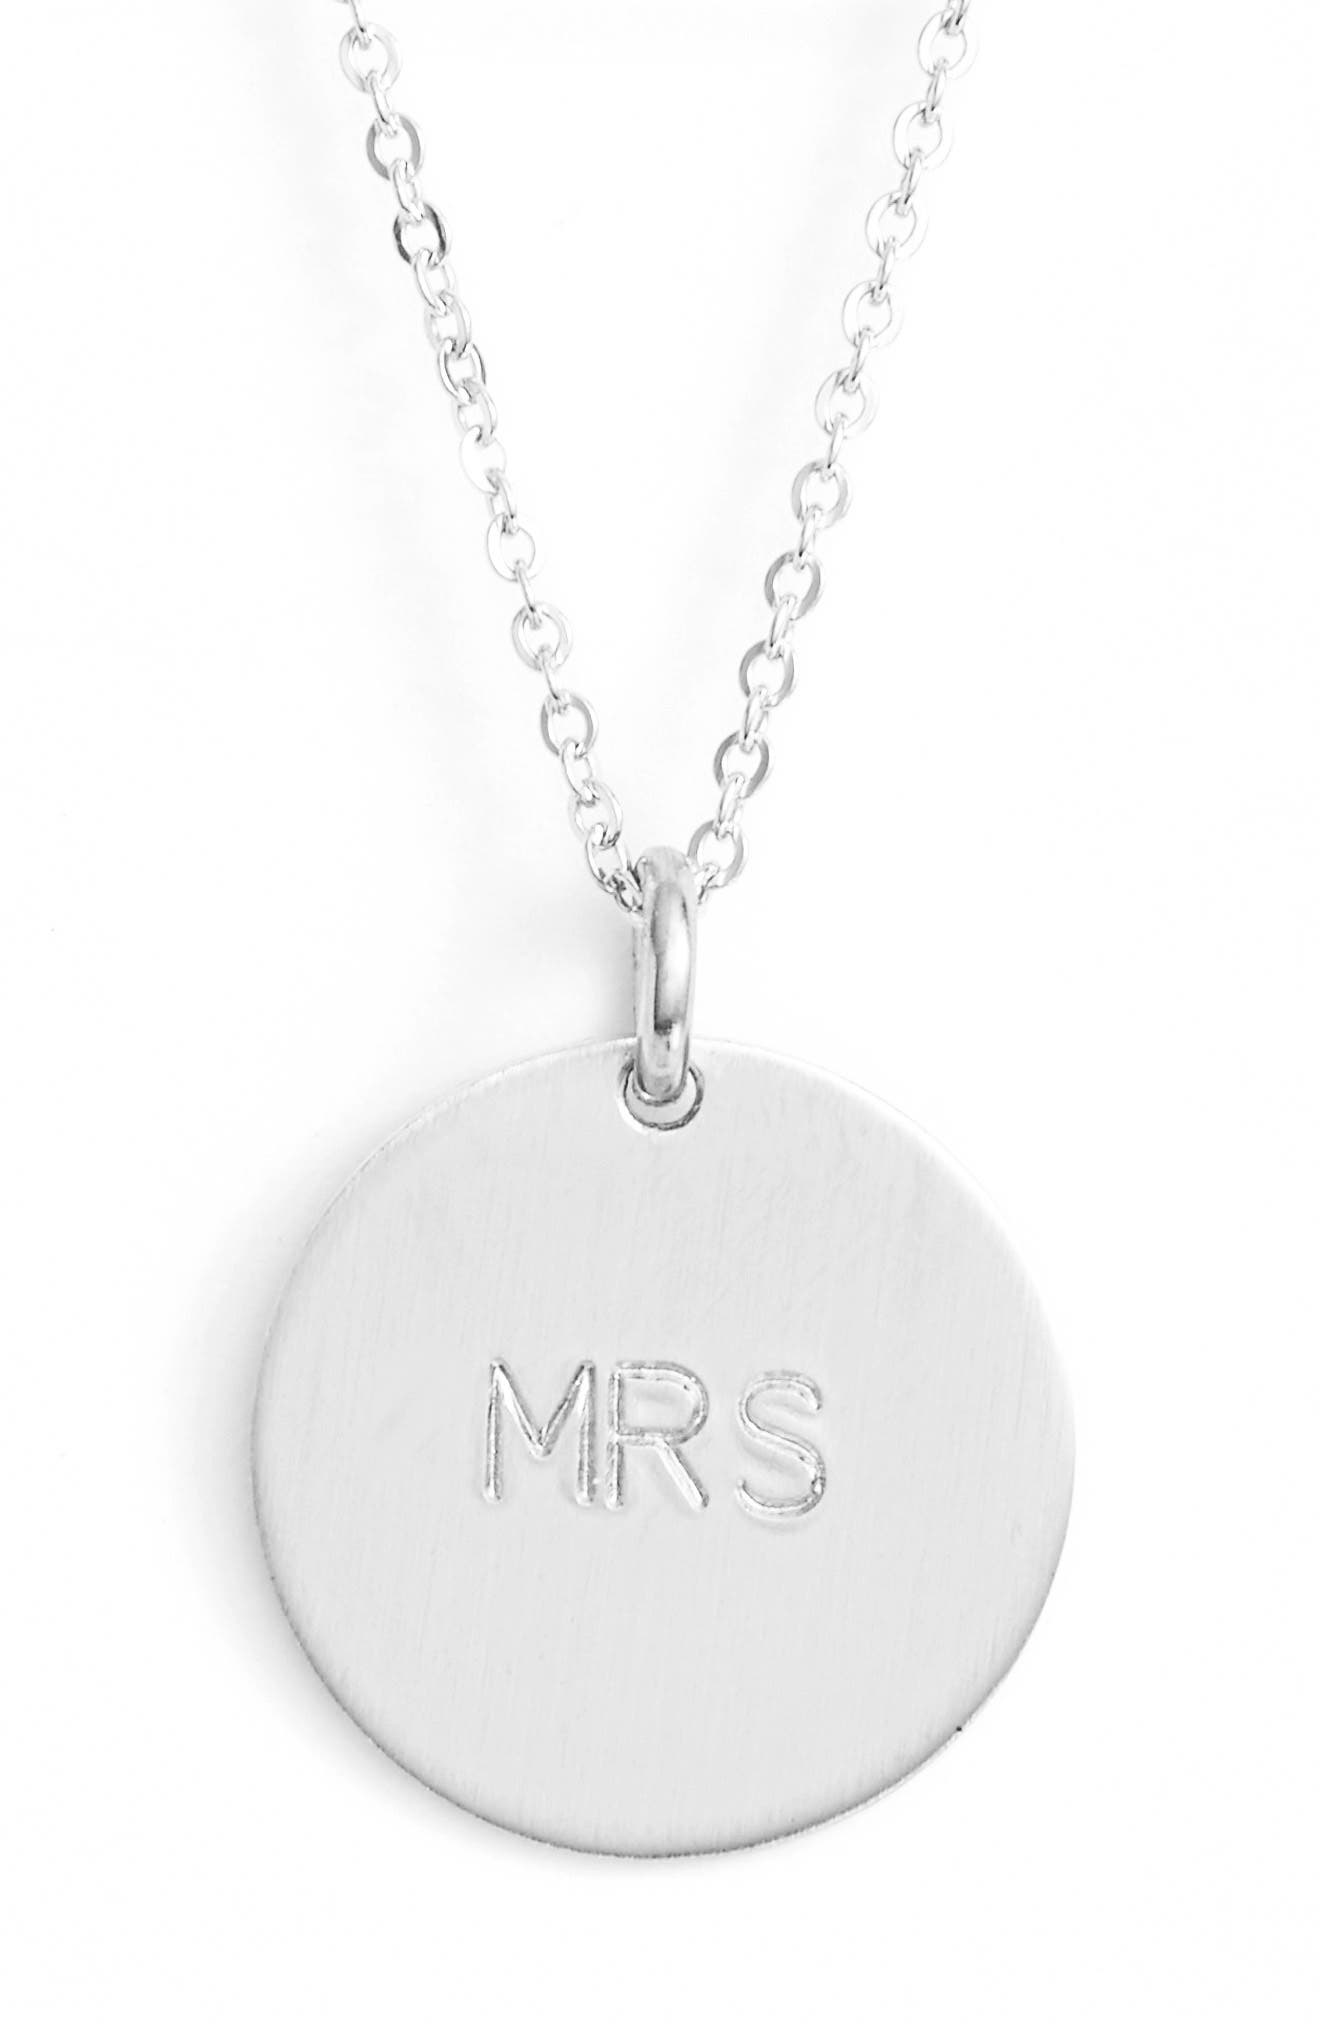 Newlywed Pendant Necklace,                         Main,                         color, Silver